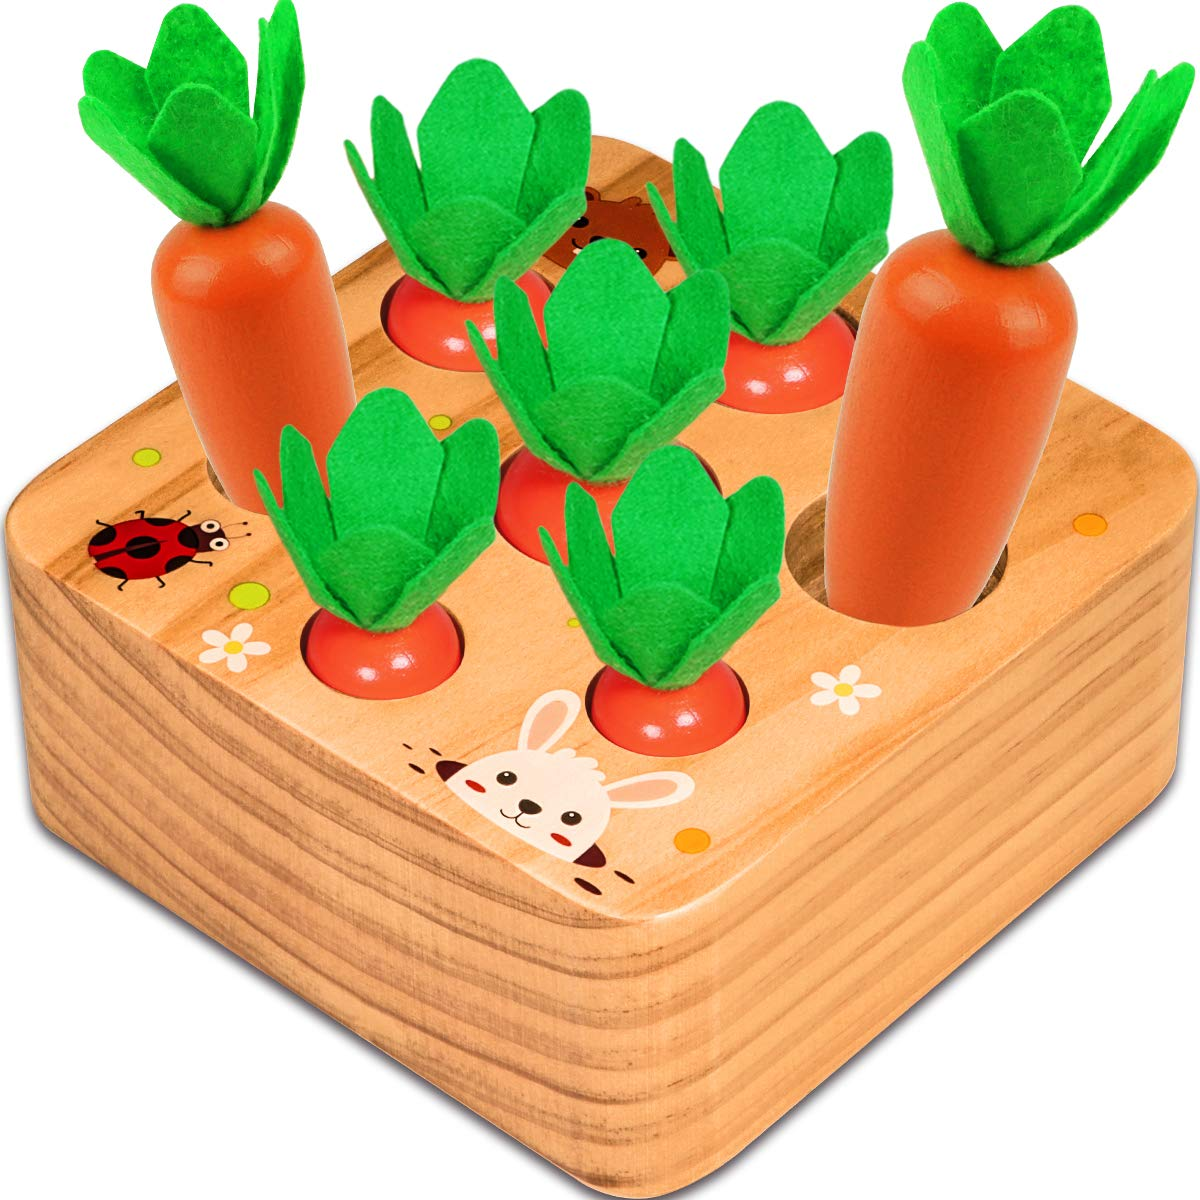 Aitbay Montessori Toys for 1 Year Old Toddlers, Carrots Harvest Shape Size Sorting Game Developmental Wooden Montessori Toys for Boy and Girl Age 1 Preschool Learning Fine Motor Skill